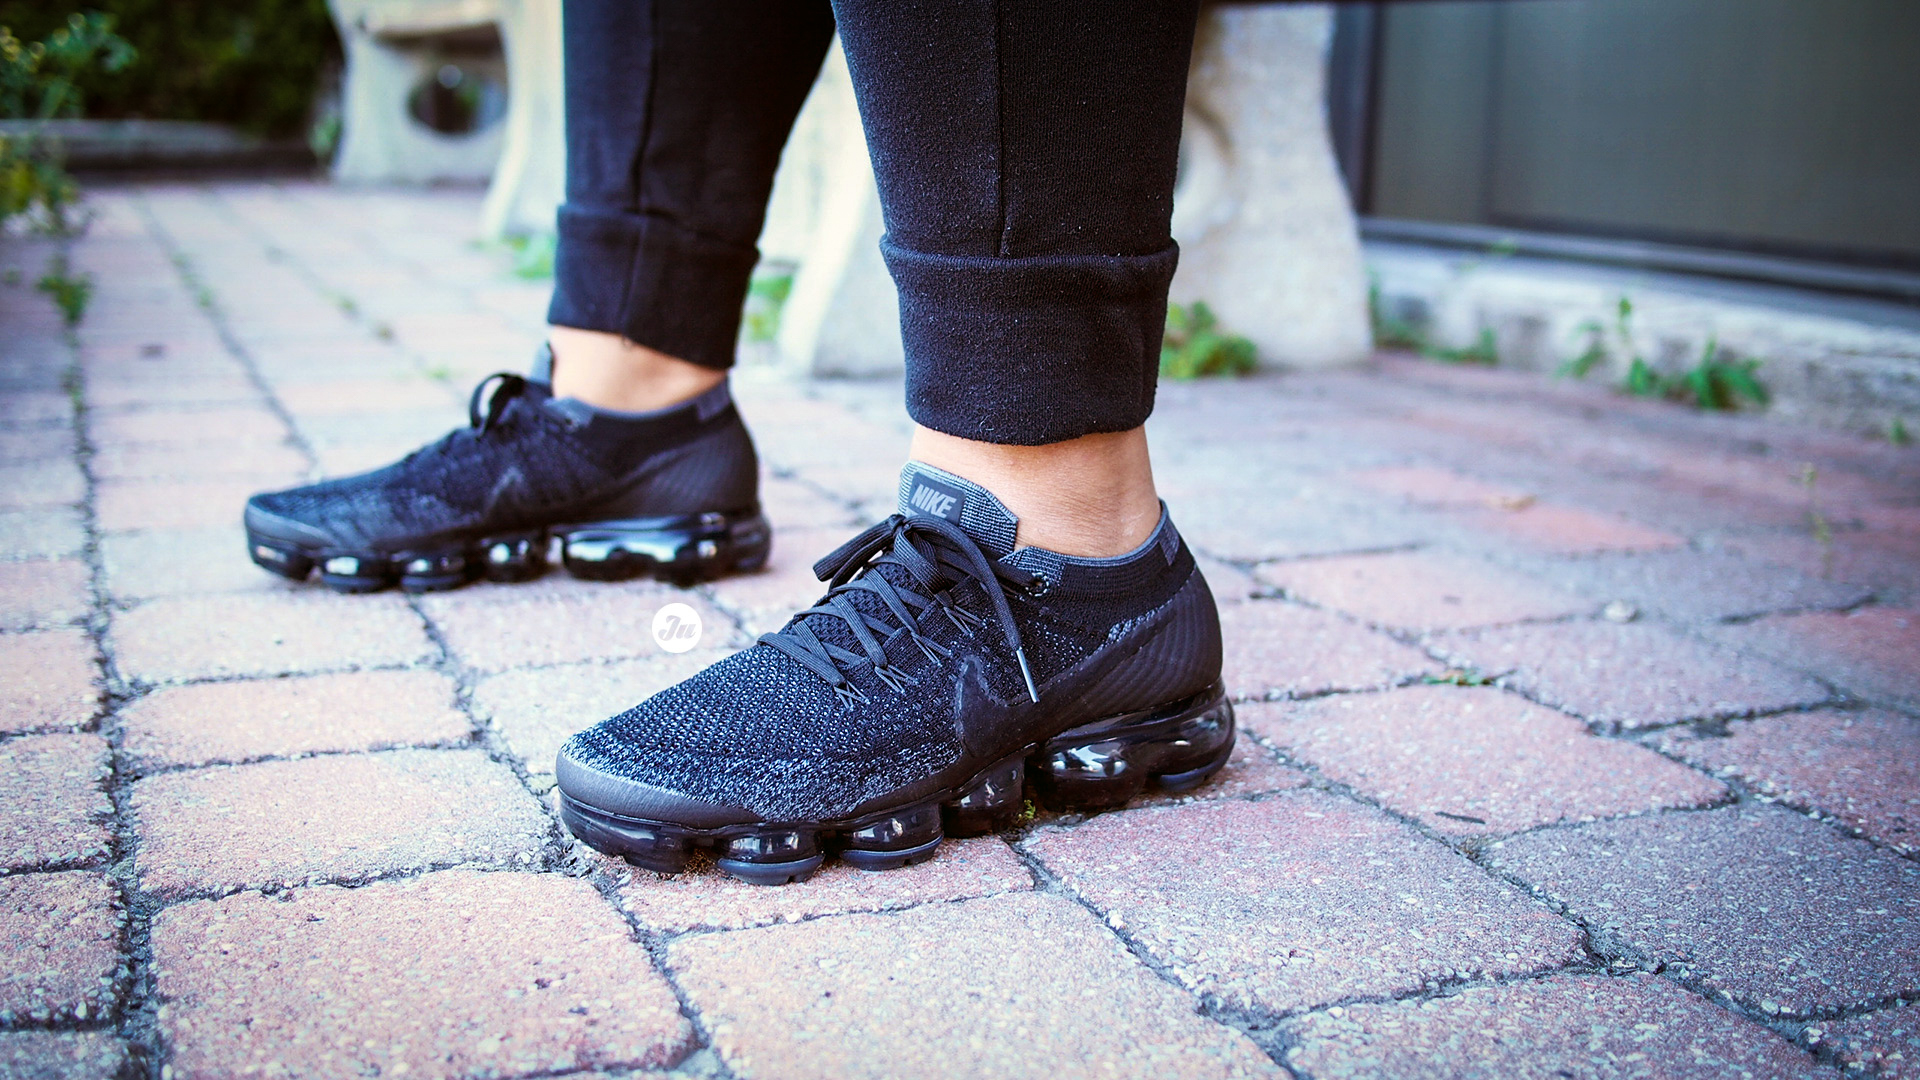 10336cc2a5dd9 Nike Air VaporMax - an update   review on my new go-to comfortable sneakers